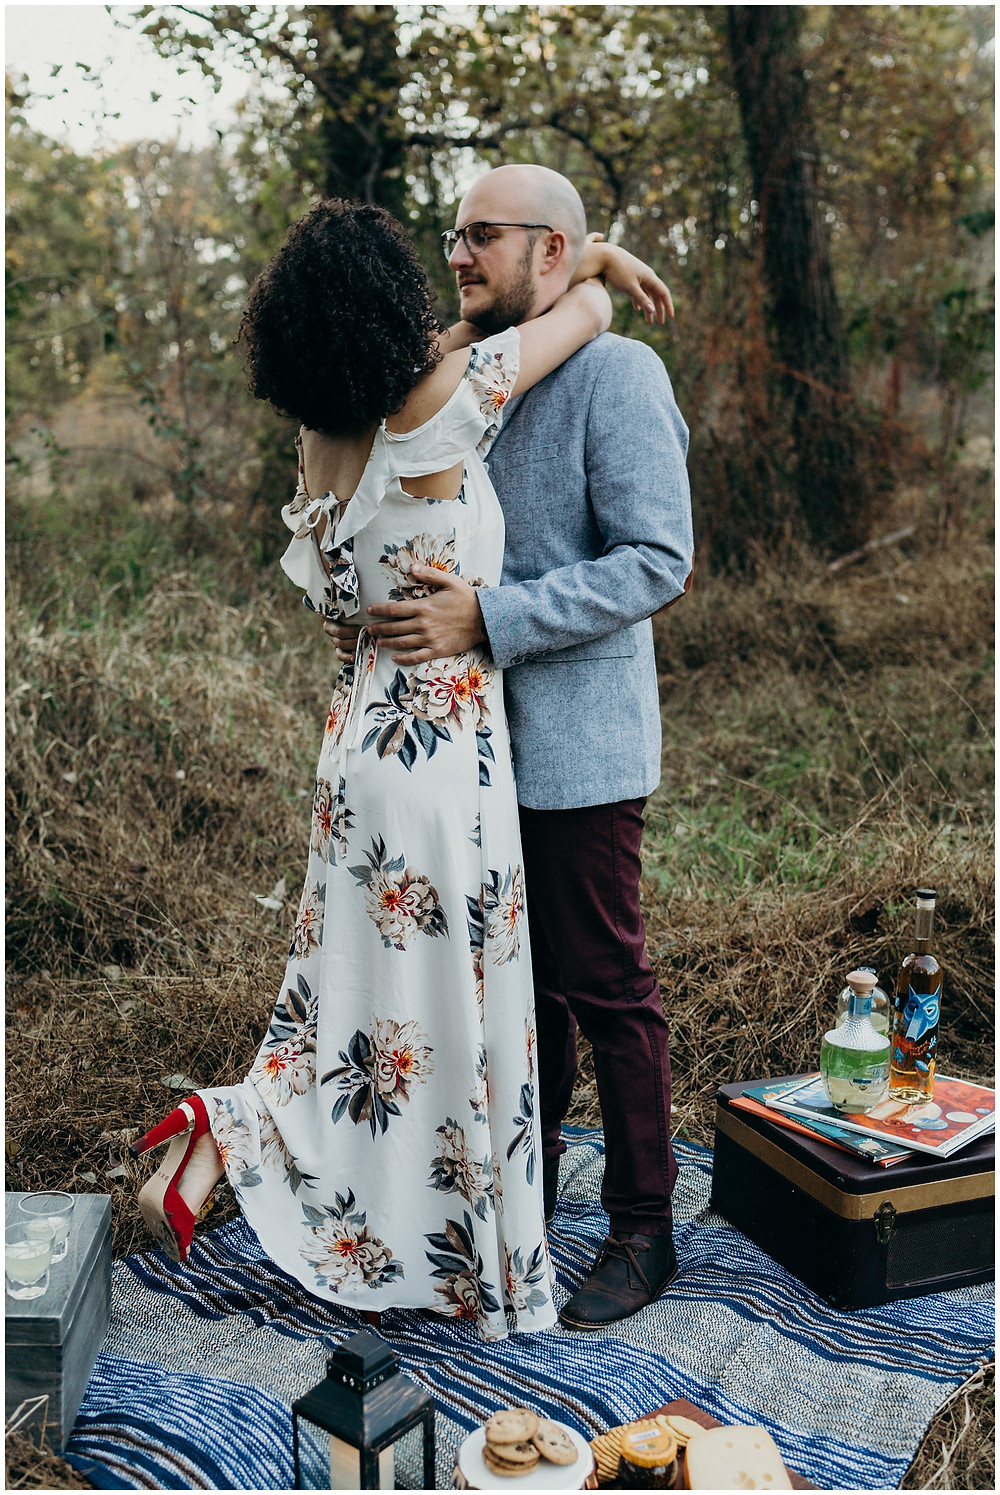 Artsy Mountain Picnic Engagement Session